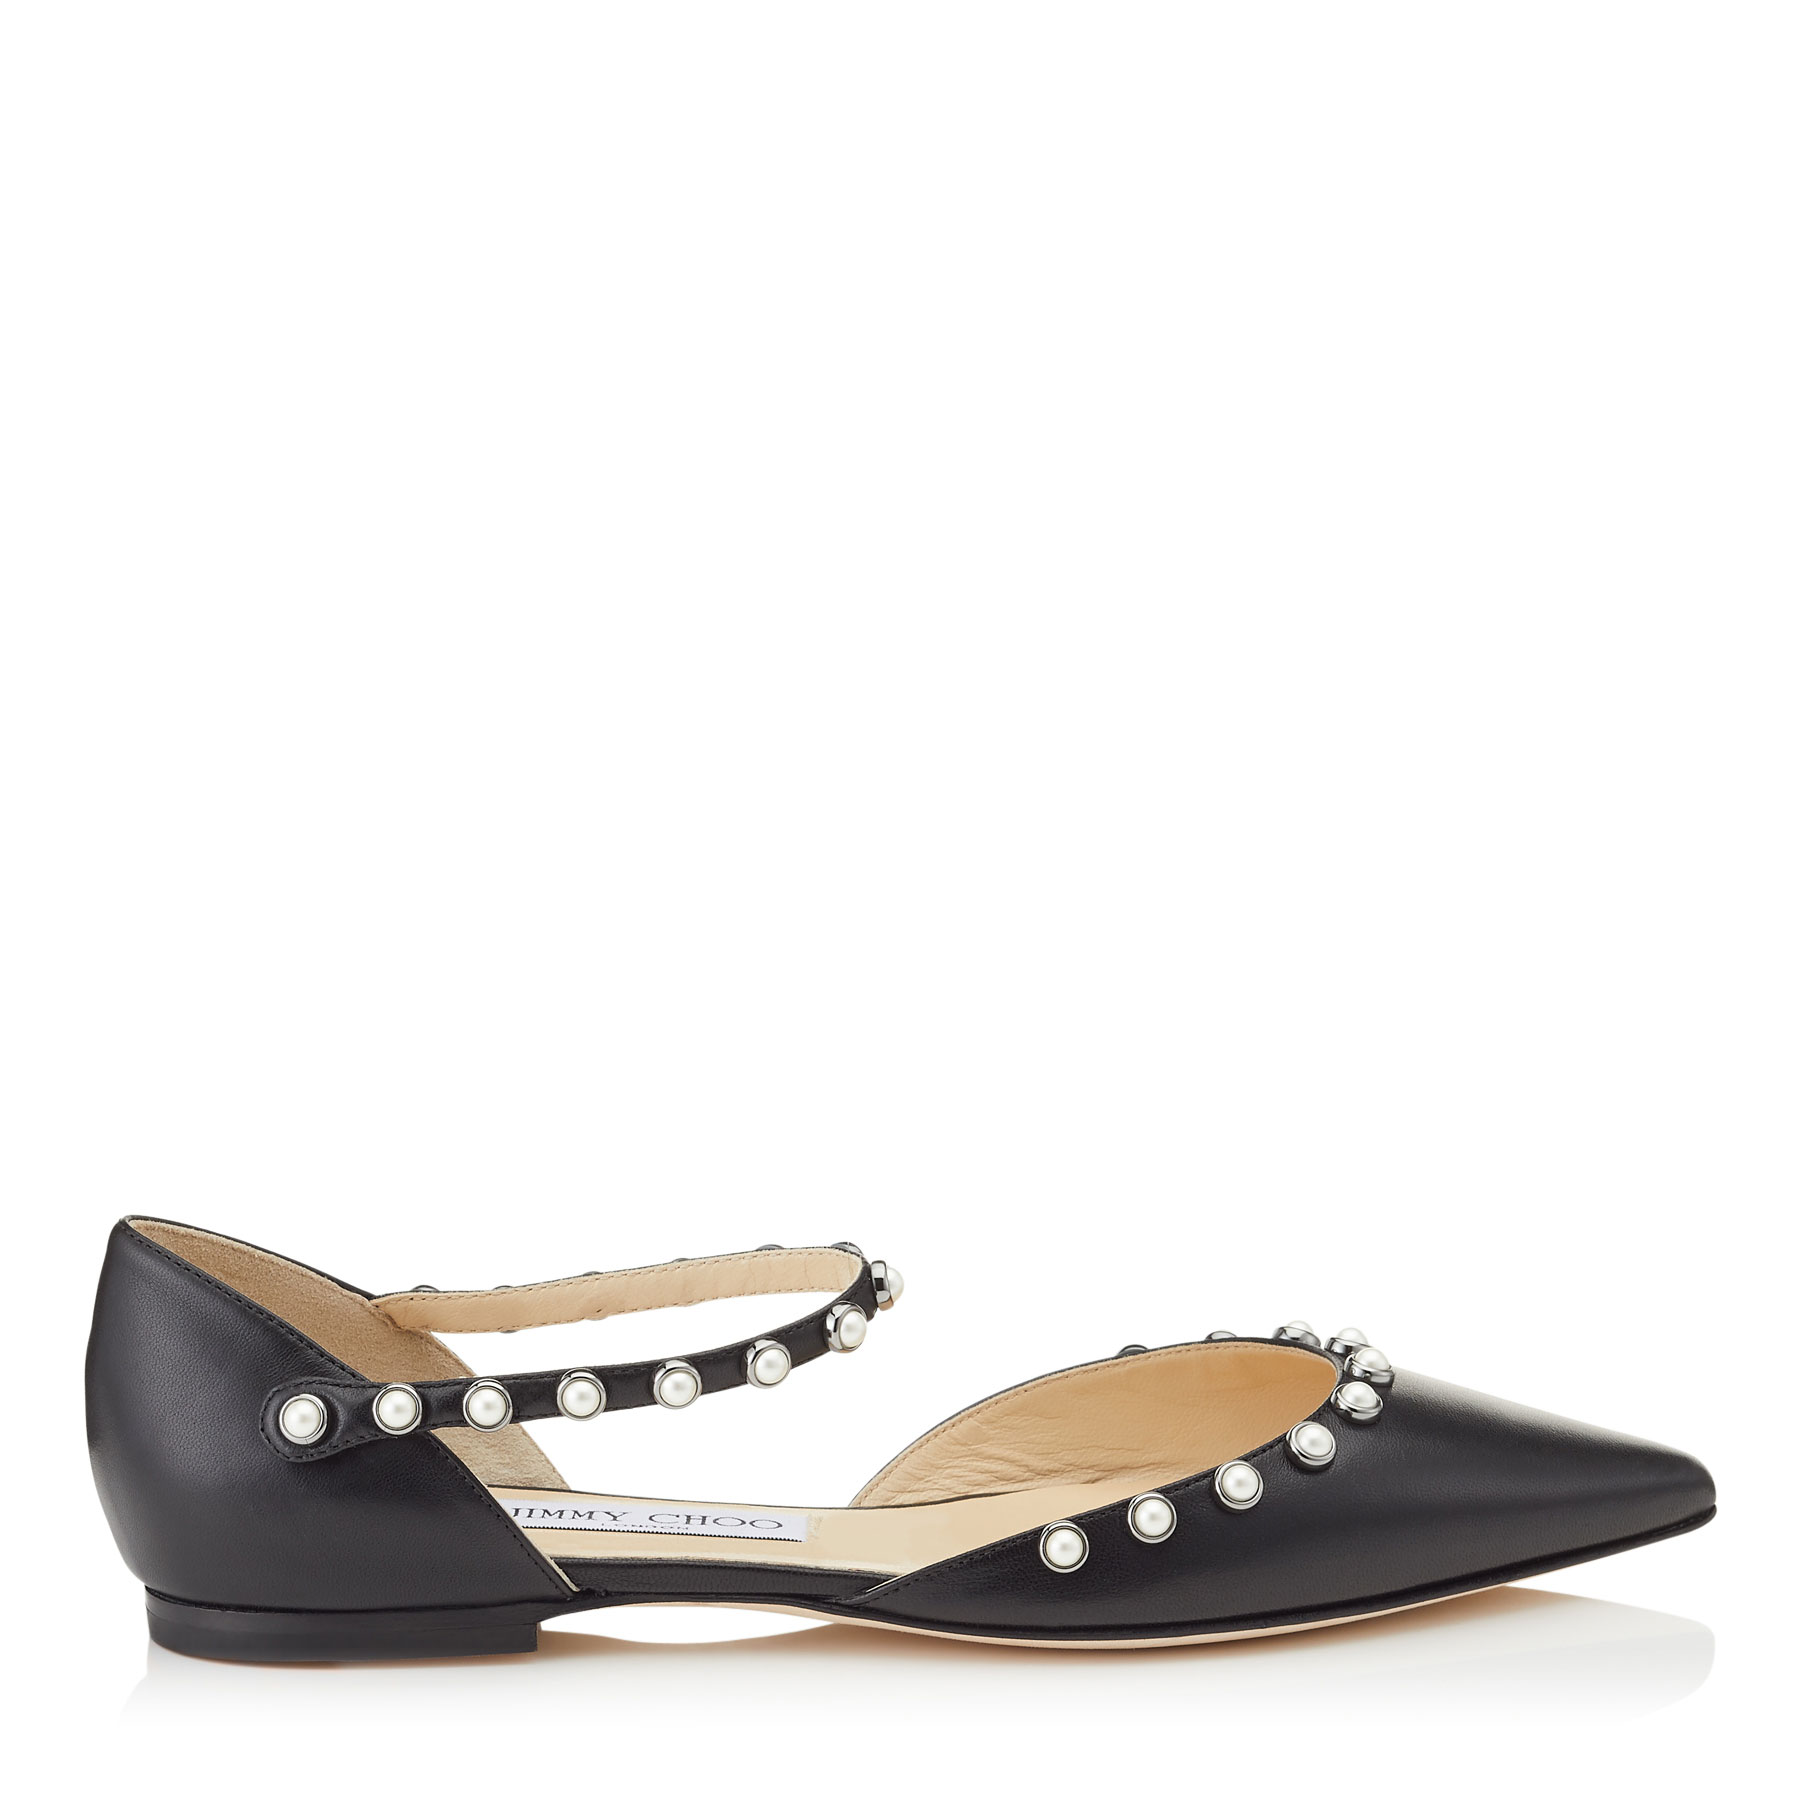 LEEMA FLAT Black Nappa Leather Flats with Beads by Jimmy Choo